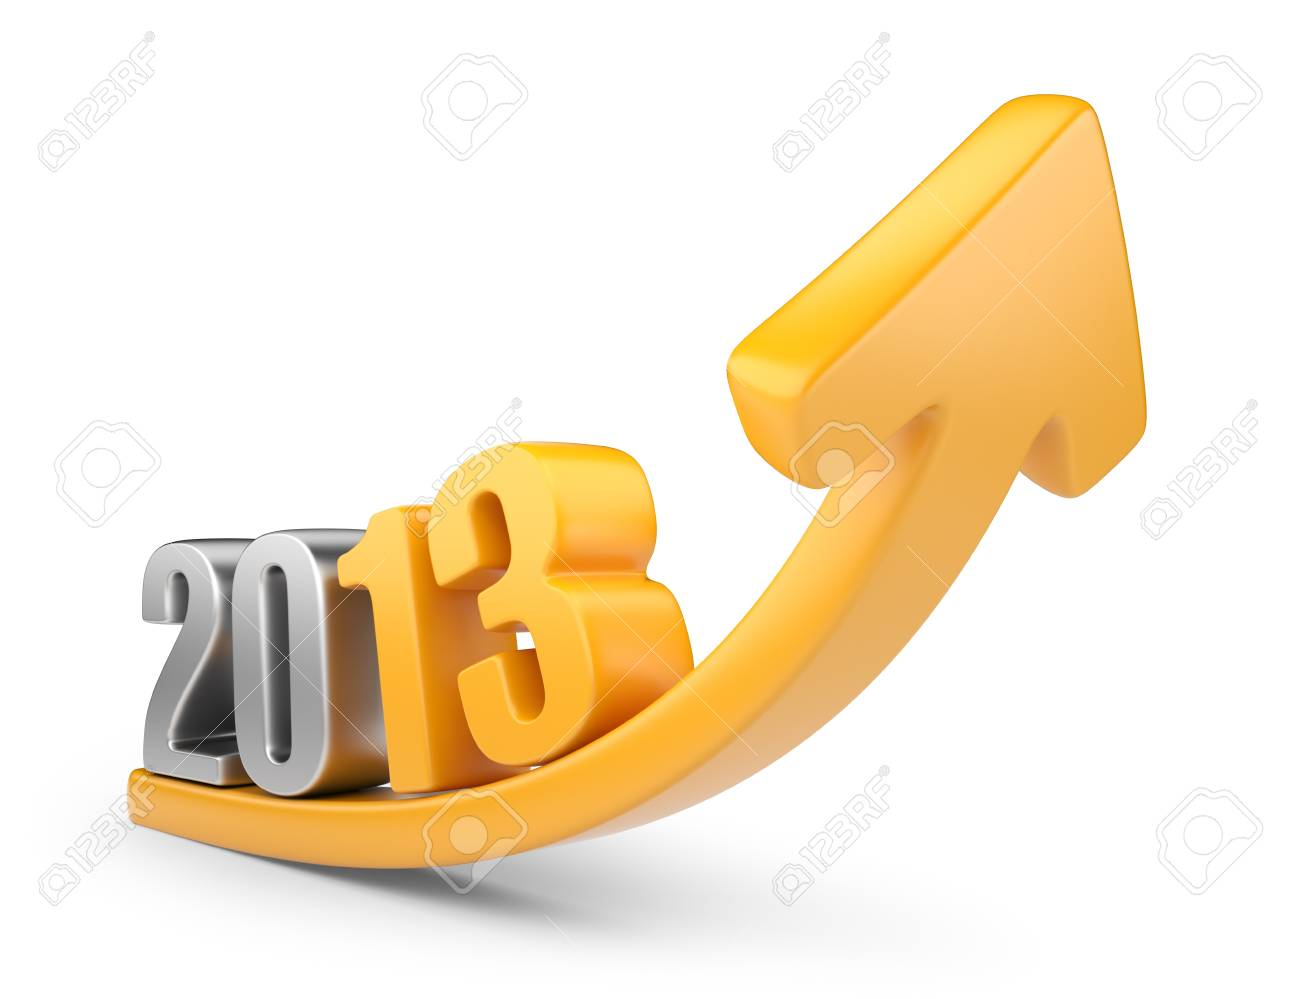 Successful new year 2013 3D calendar isolated on white - 16400315